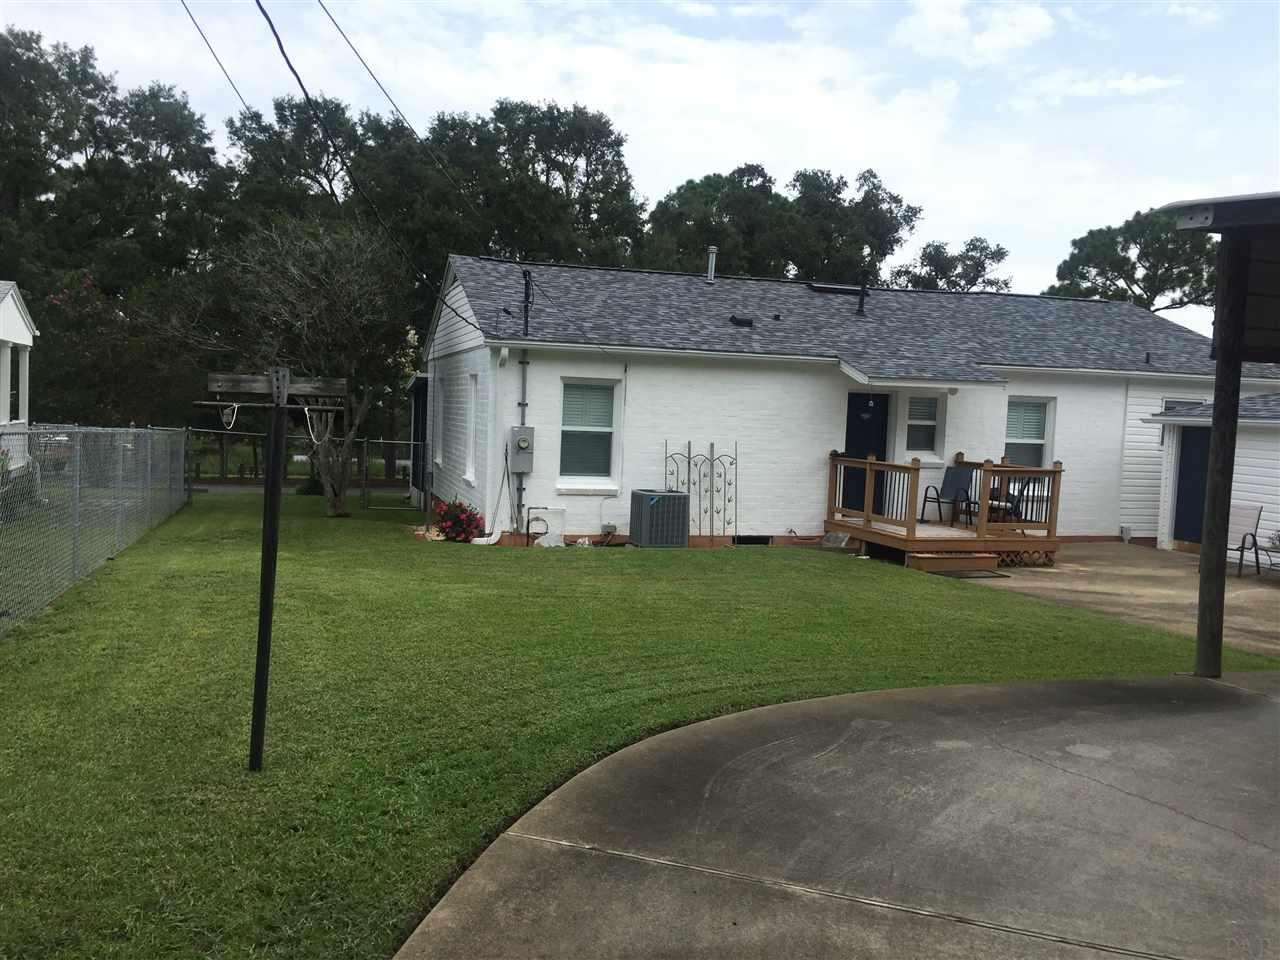 315 Nw Syrcle Dr, Pensacola, FL 32507